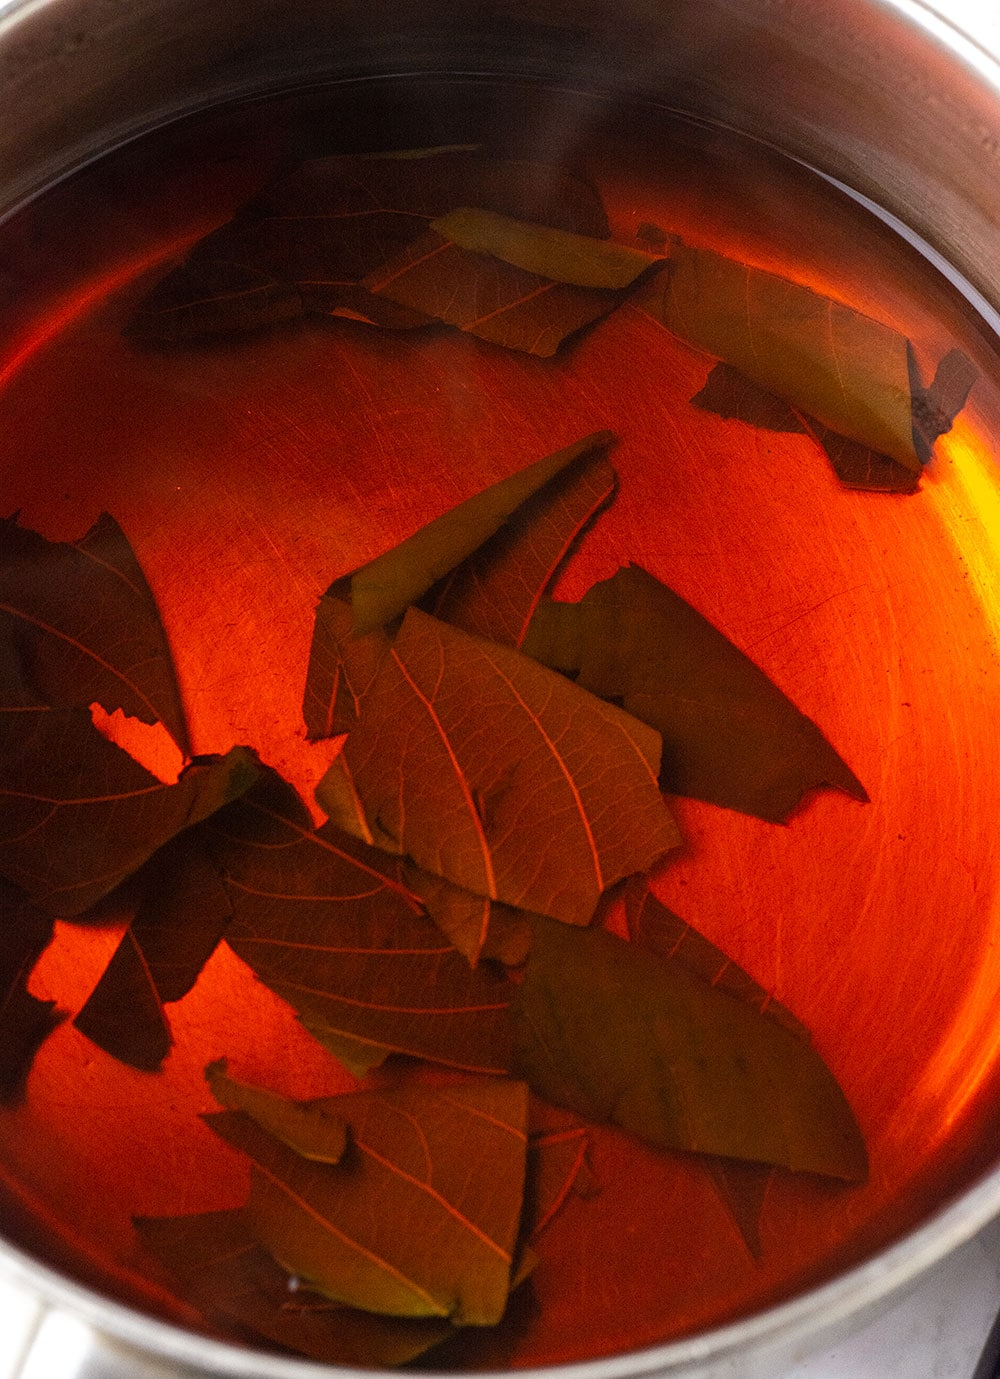 chopped loquat leaves being steeped in boiling water, water is red